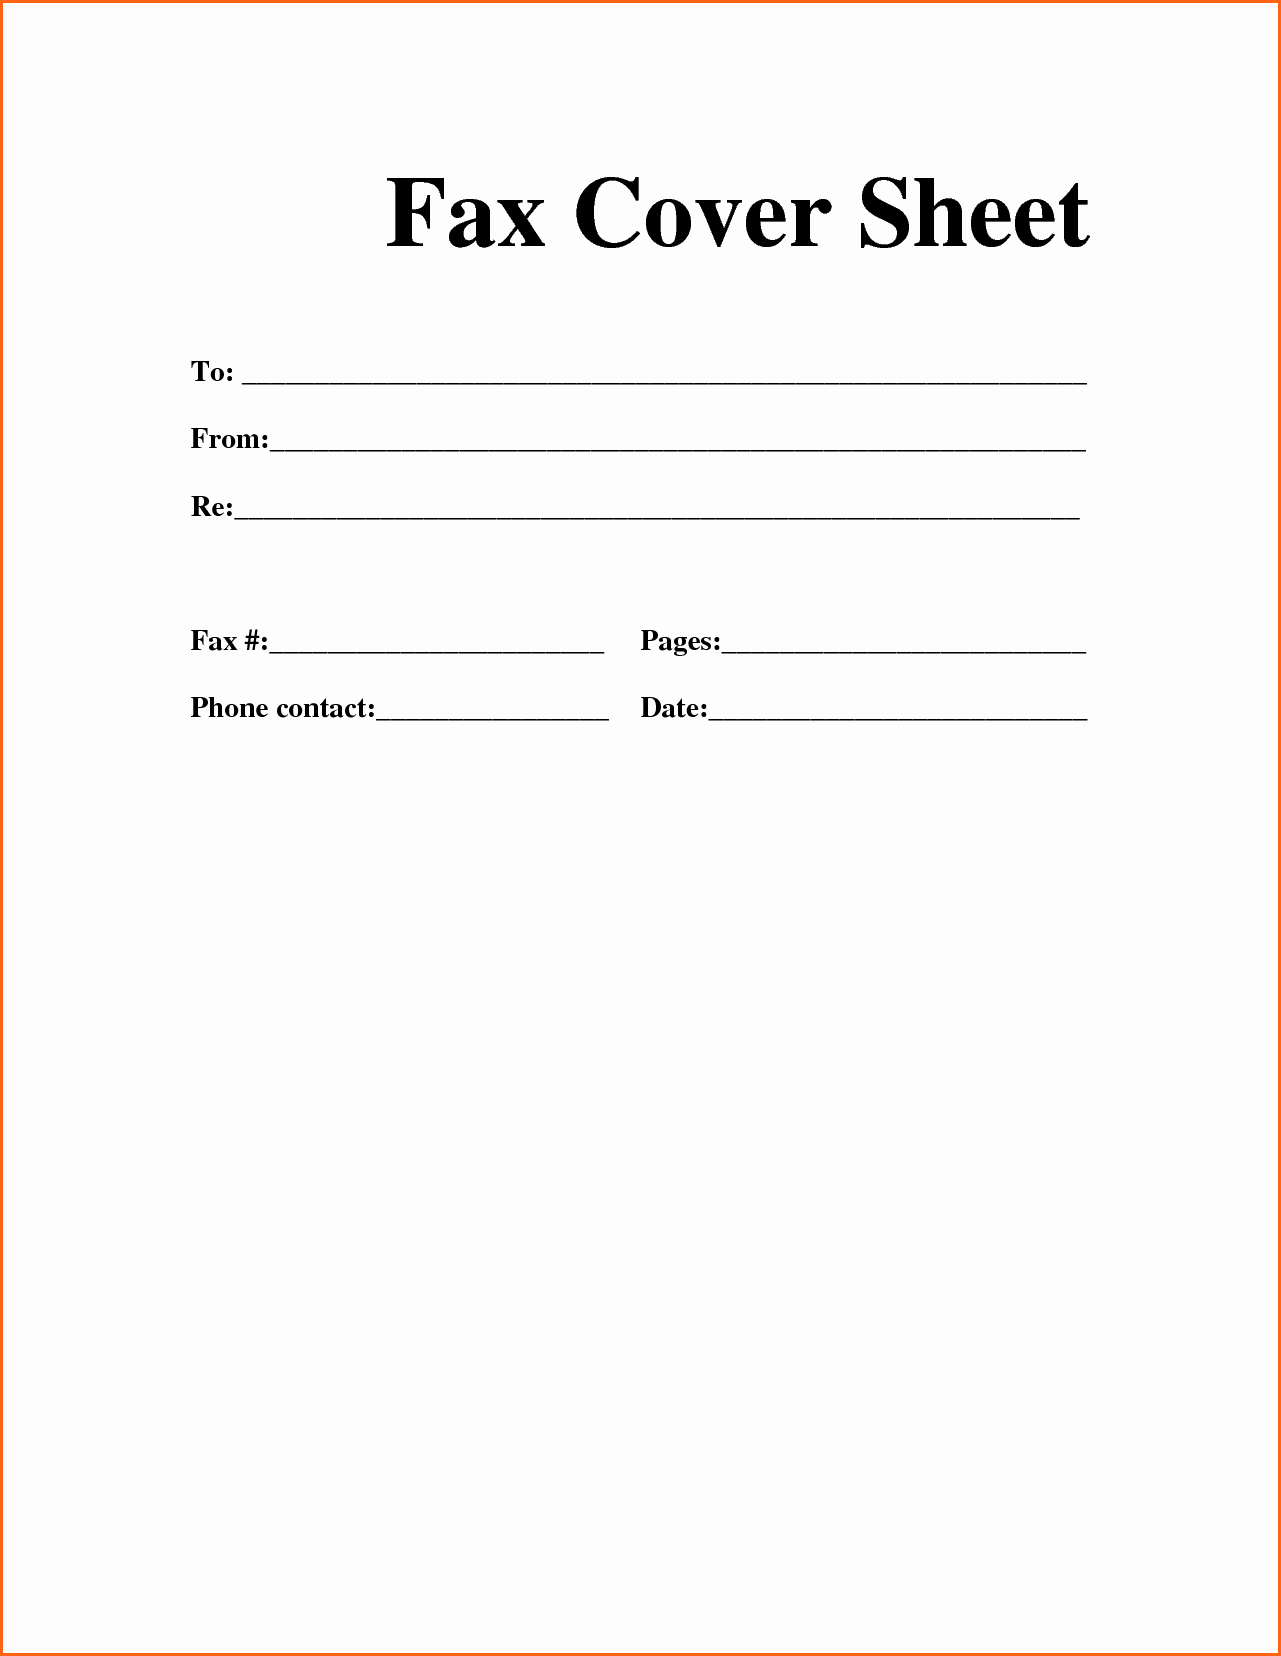 Free Printable Fax Cover Letter Best Of Printable Fax Cover Sheet Free Fax Cover Sheet Template